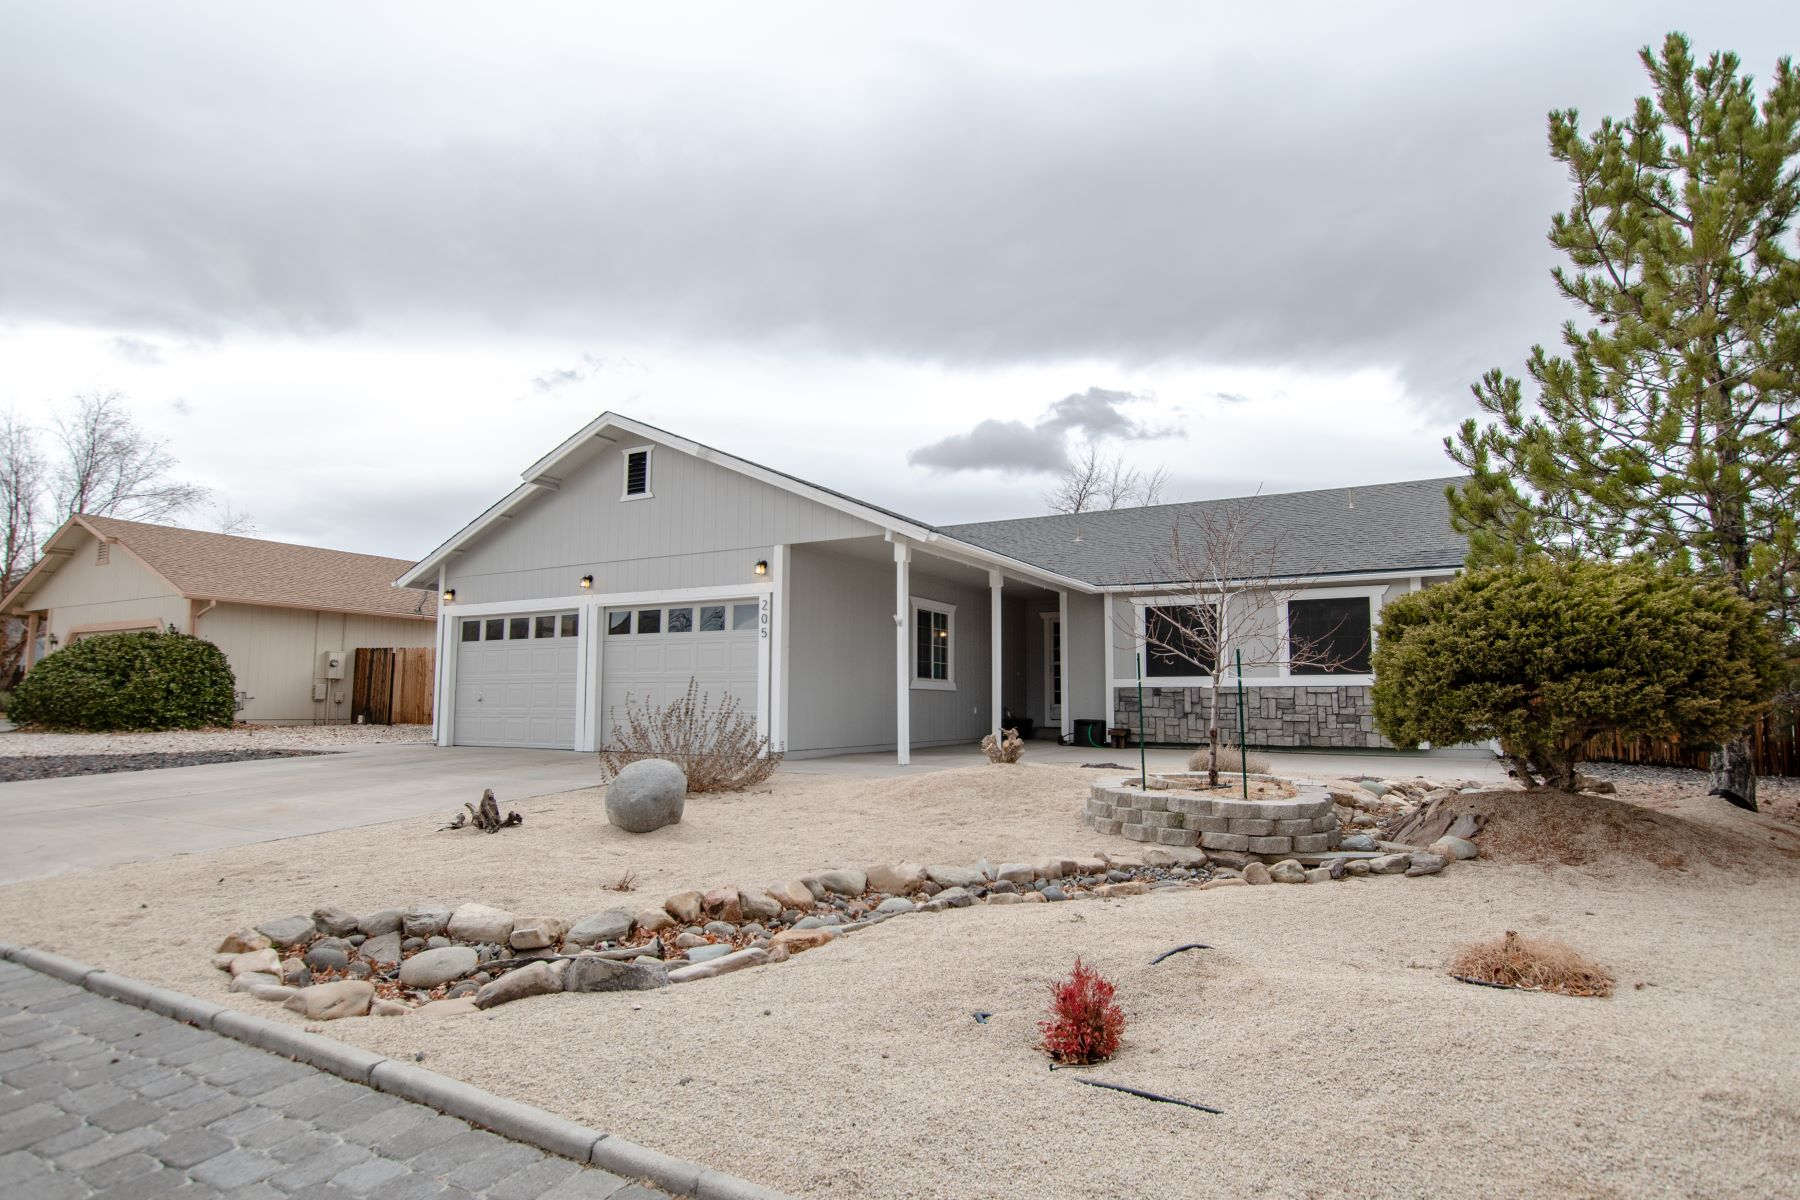 Single Family Home for Active at 205 Carlene Drive, Sparks, Nevada 205 Carlene Drive Sparks, Nevada 89436 United States